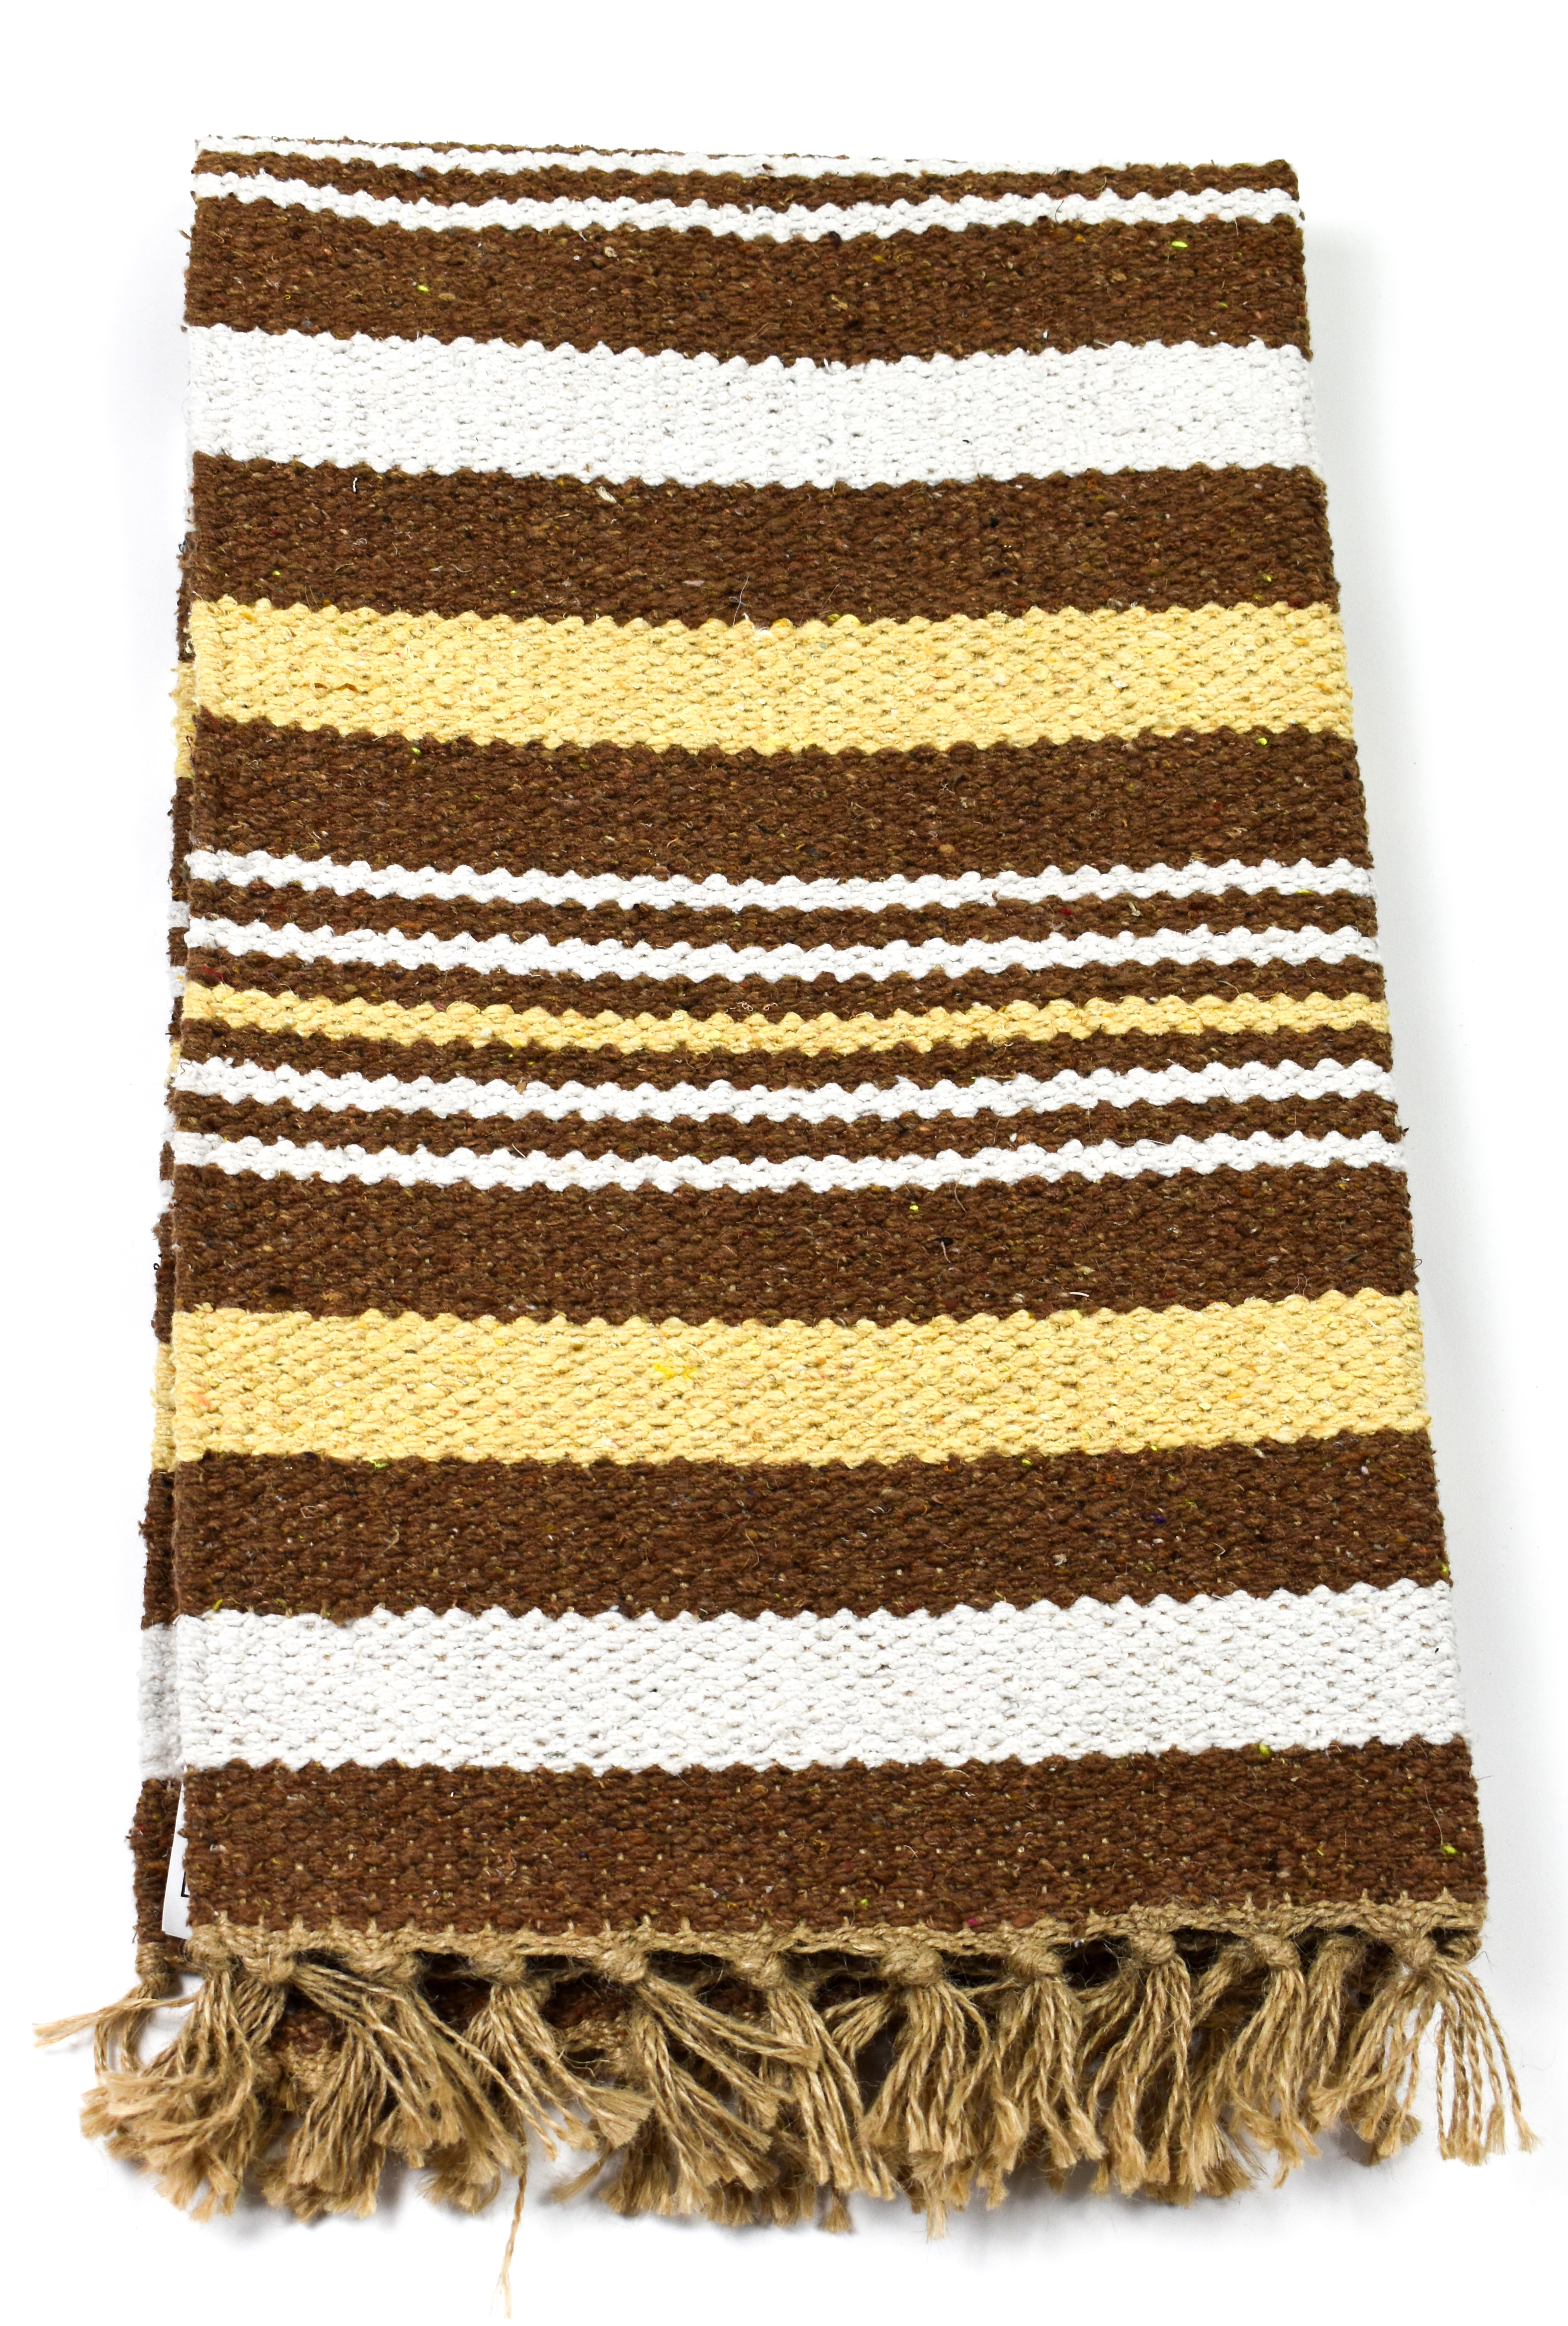 Cotton Jute Brown Tone Rug Brown Stripe 5 Sizes Fair Trade